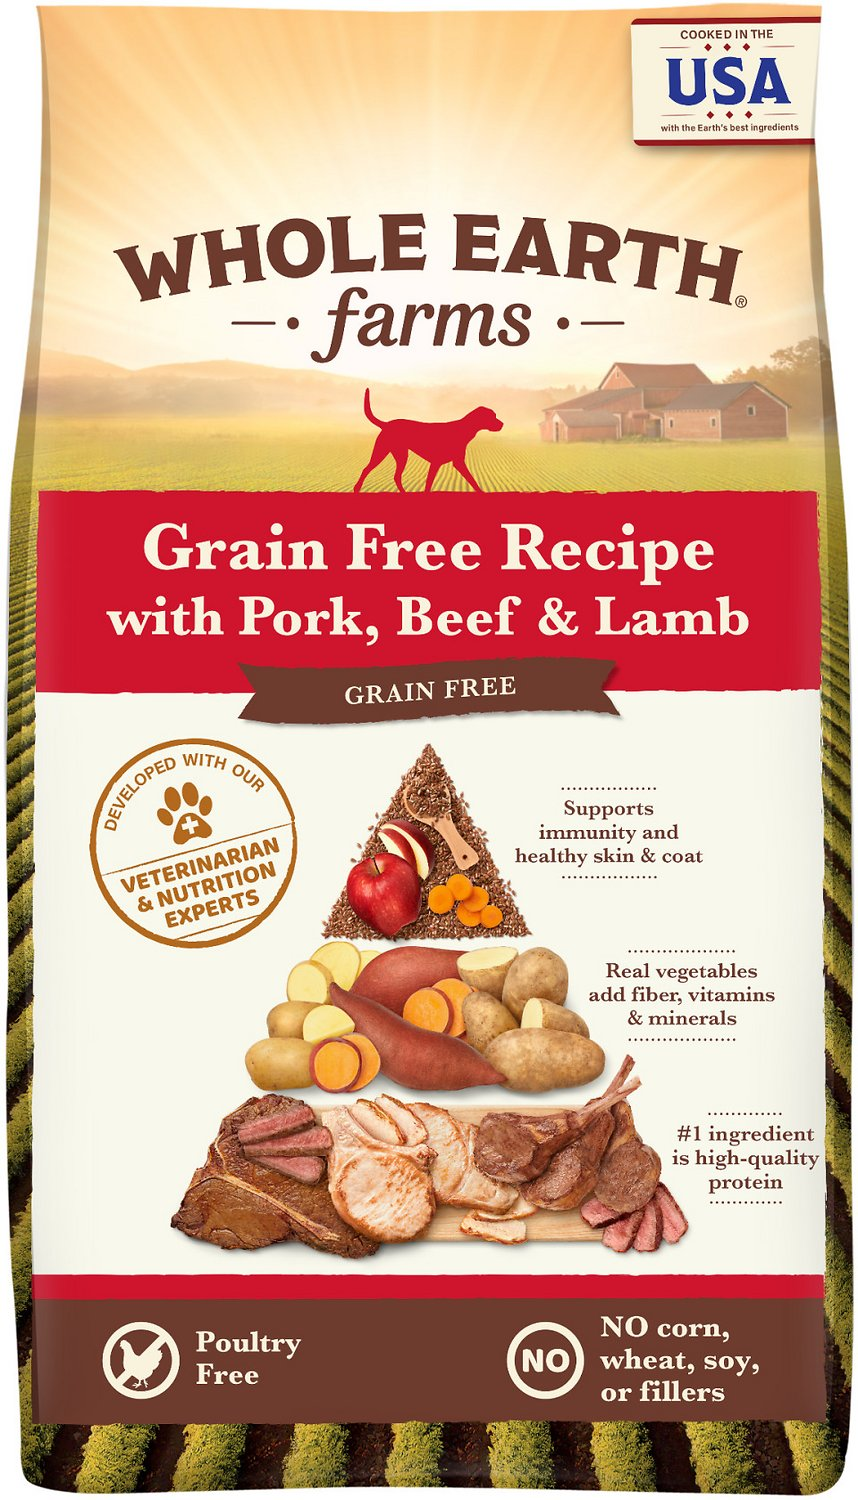 Whole Earth Farms Grain-Free Pork, Beef, & Lamb Recipe